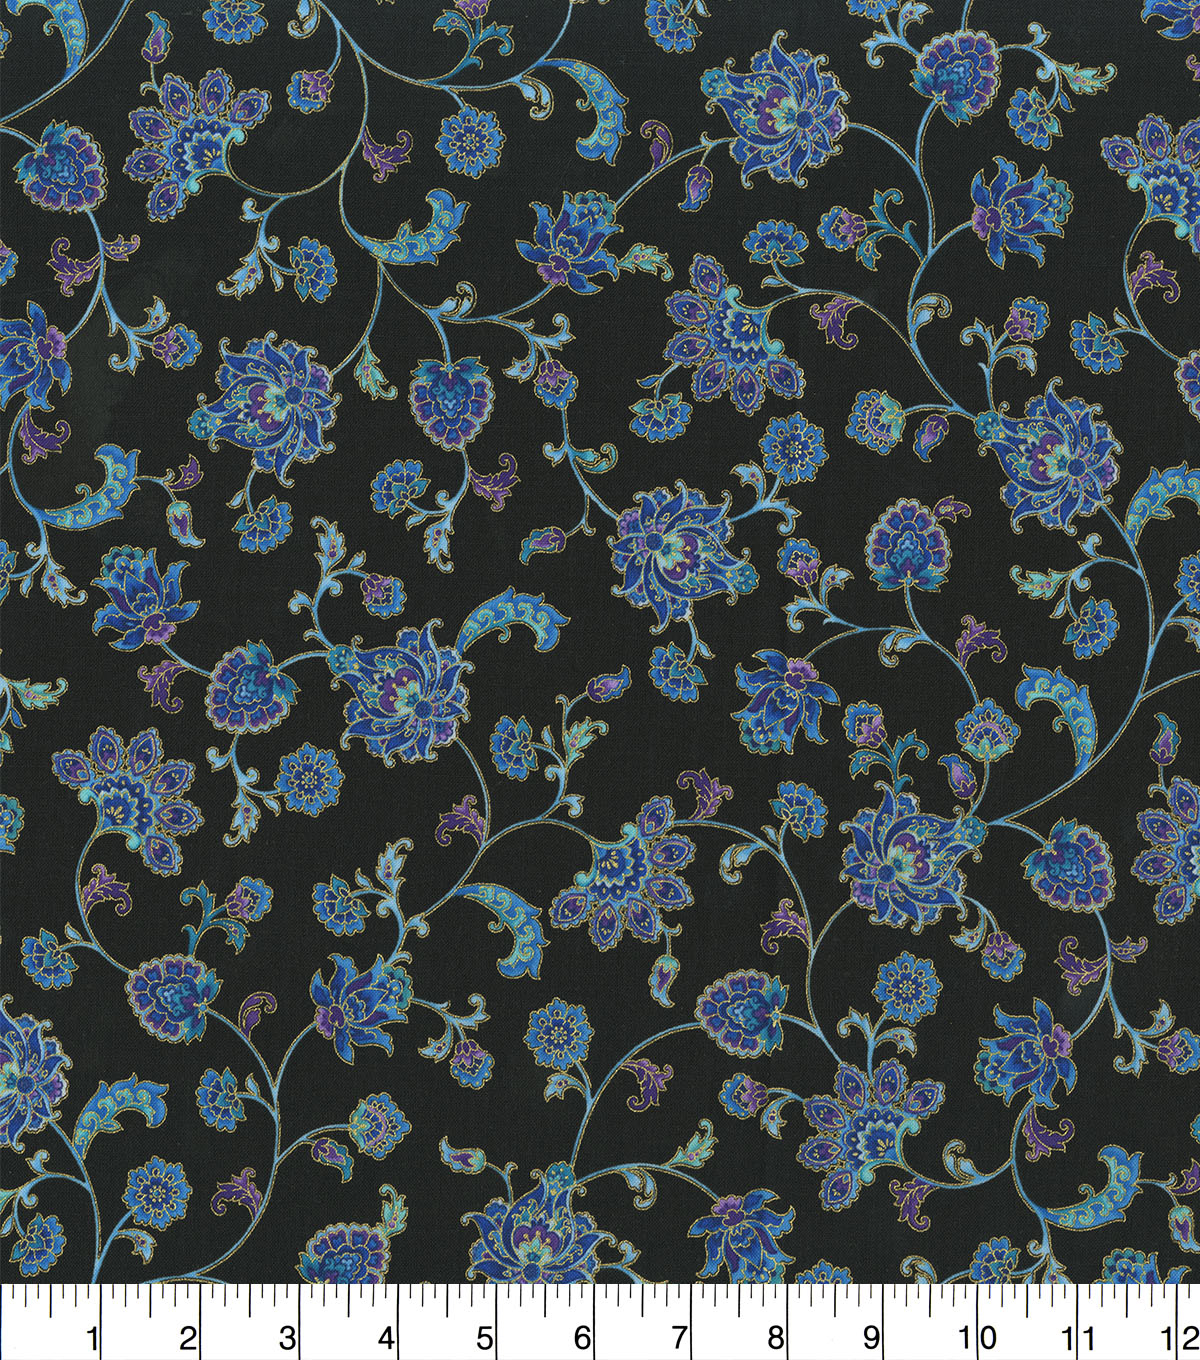 Premium Cotton Fabric-Budding Flower Vine on Black